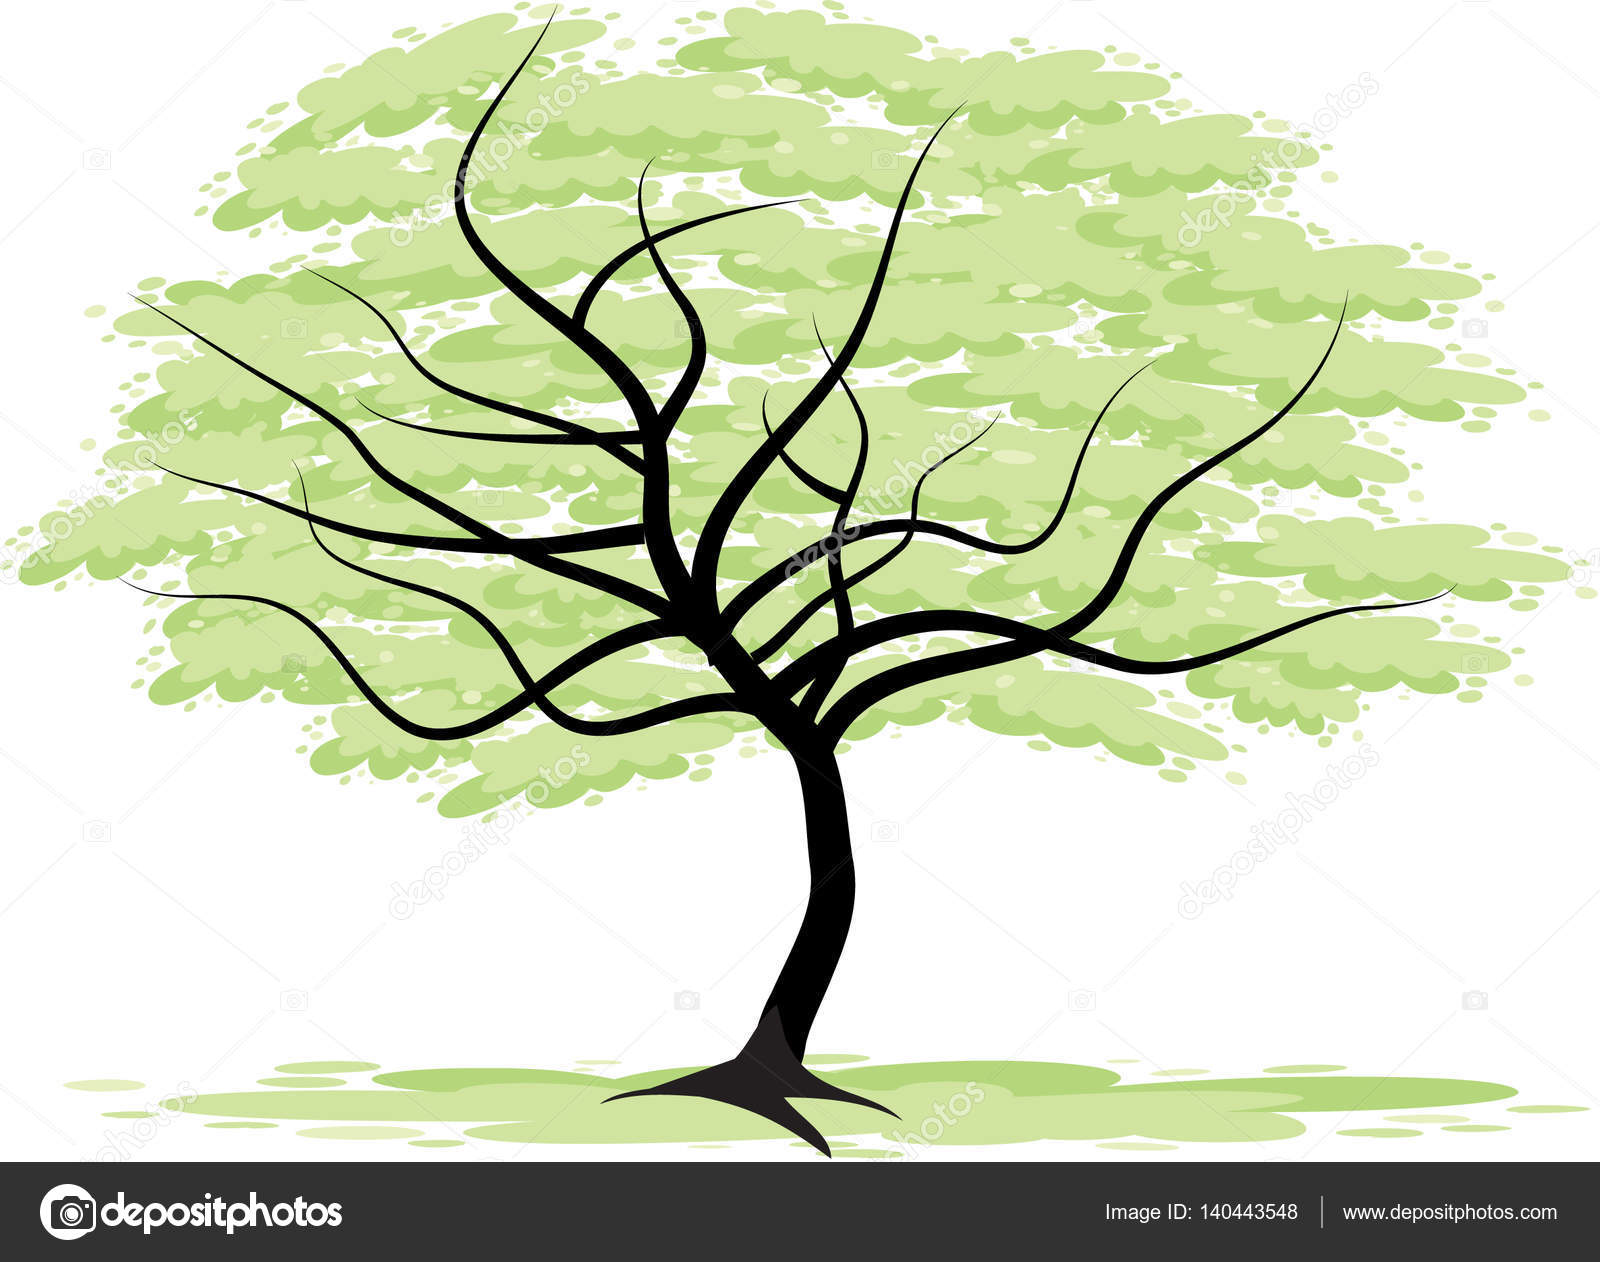 Big Tree Drawing at GetDrawings.com | Free for personal use Big Tree ...